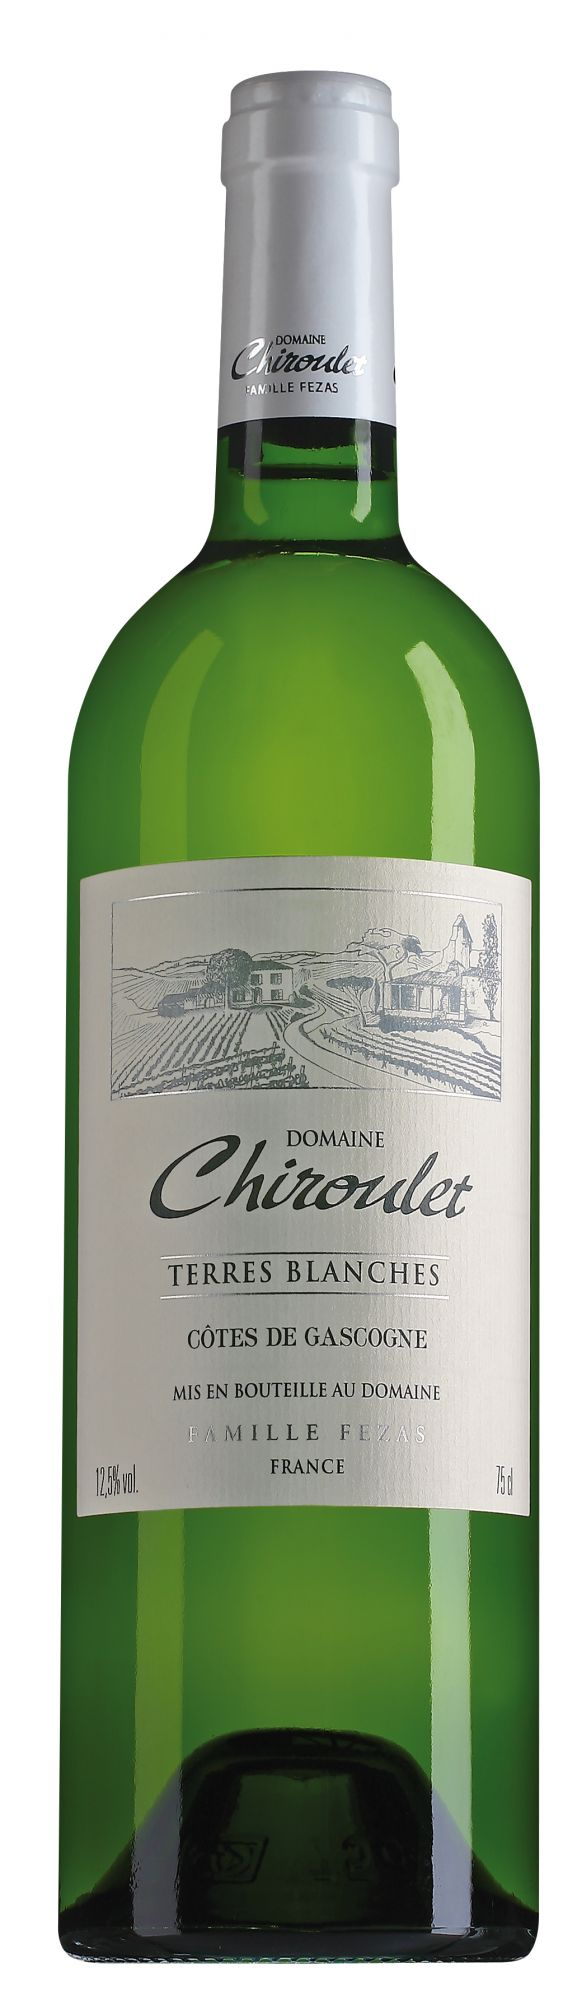 Domaine Chiroulet Gascogne Terres Blanches